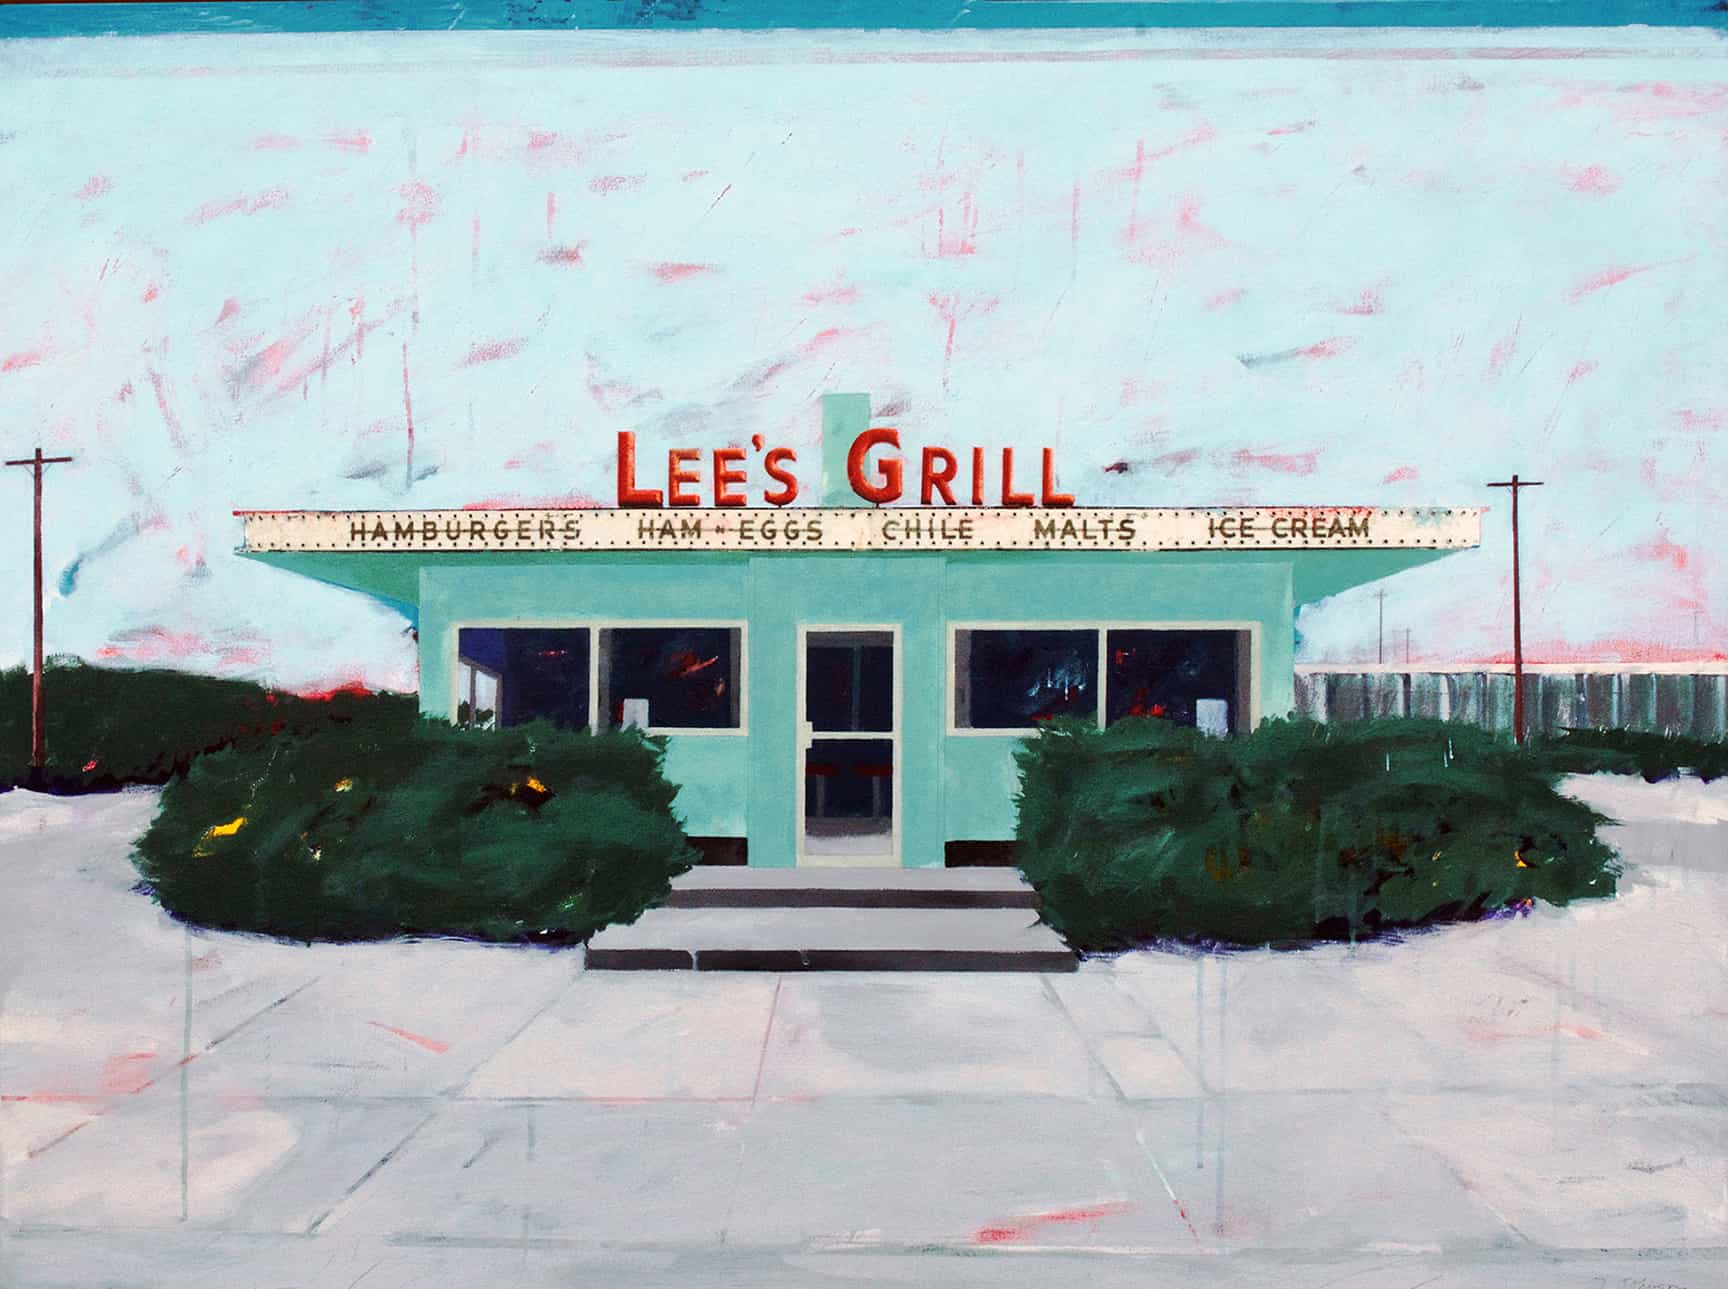 Lee's Grill